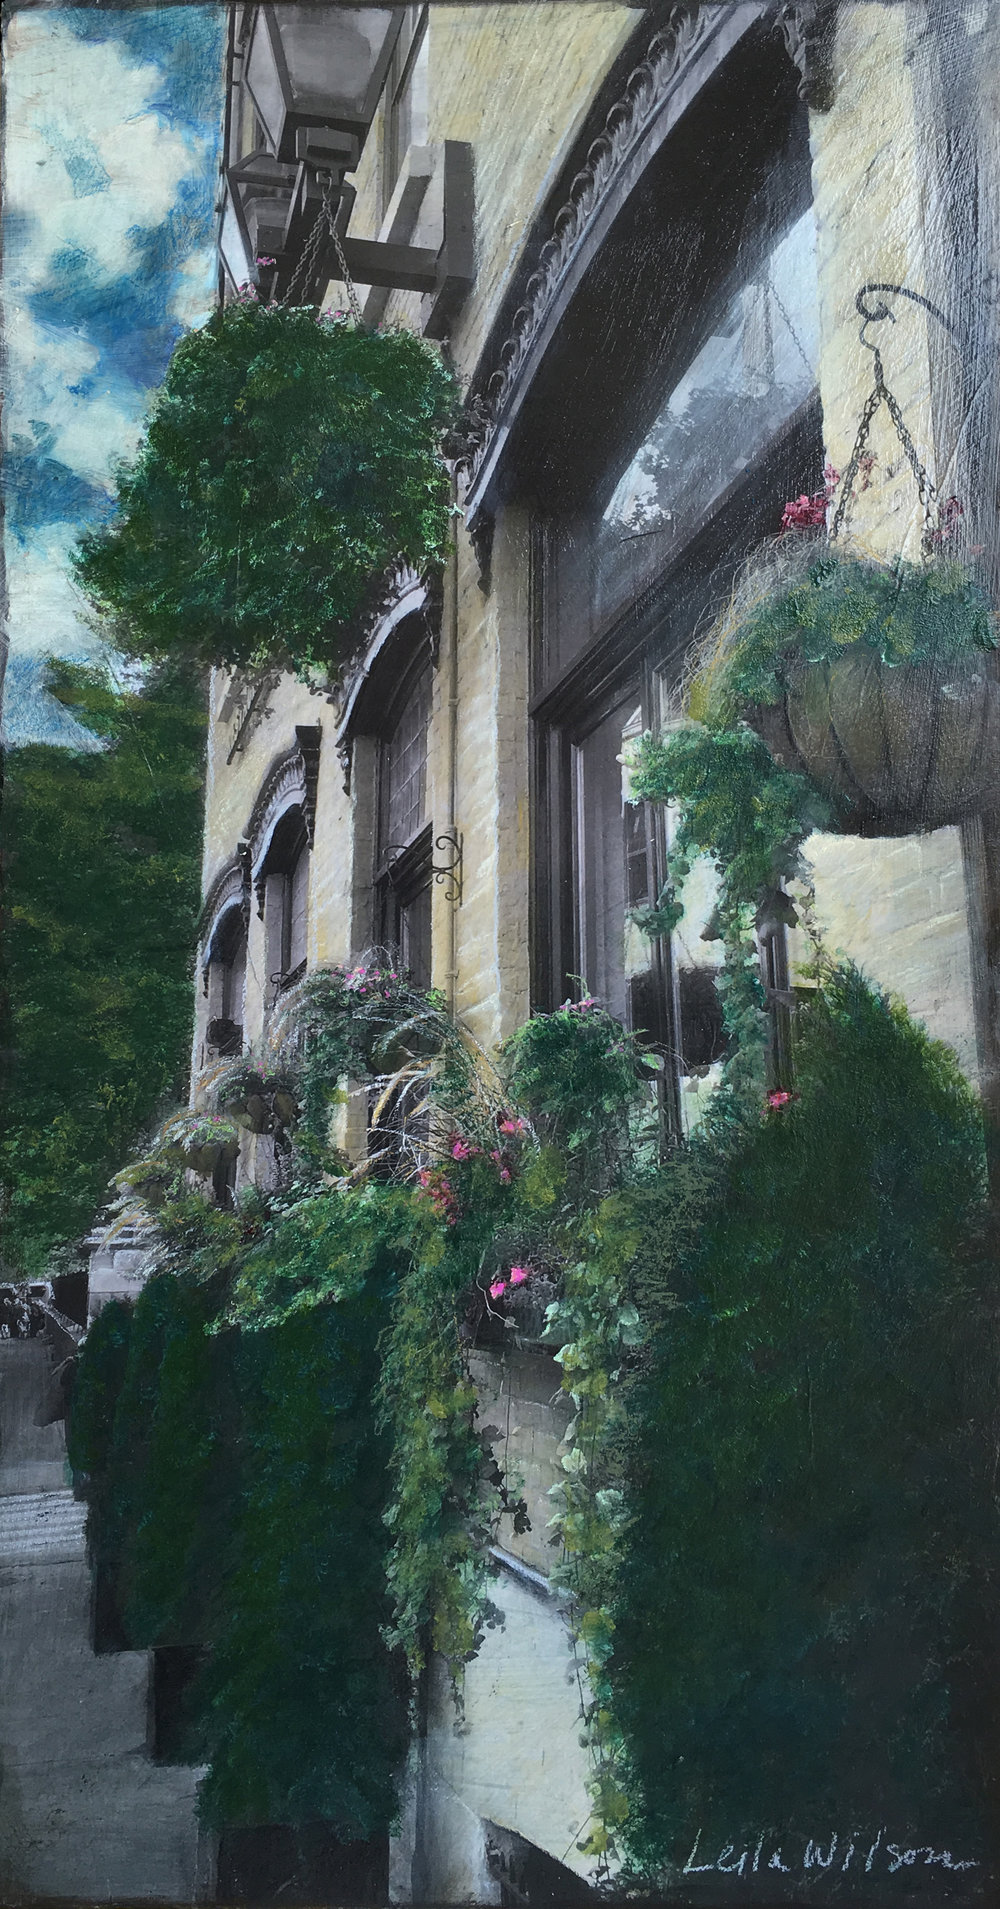 Travel Series: Old Quebec Garden Facade    Description: Mixed Media Original Painting on Wood Panel, Custom Reclaimed Wood Frame (24x48)  Private Collection